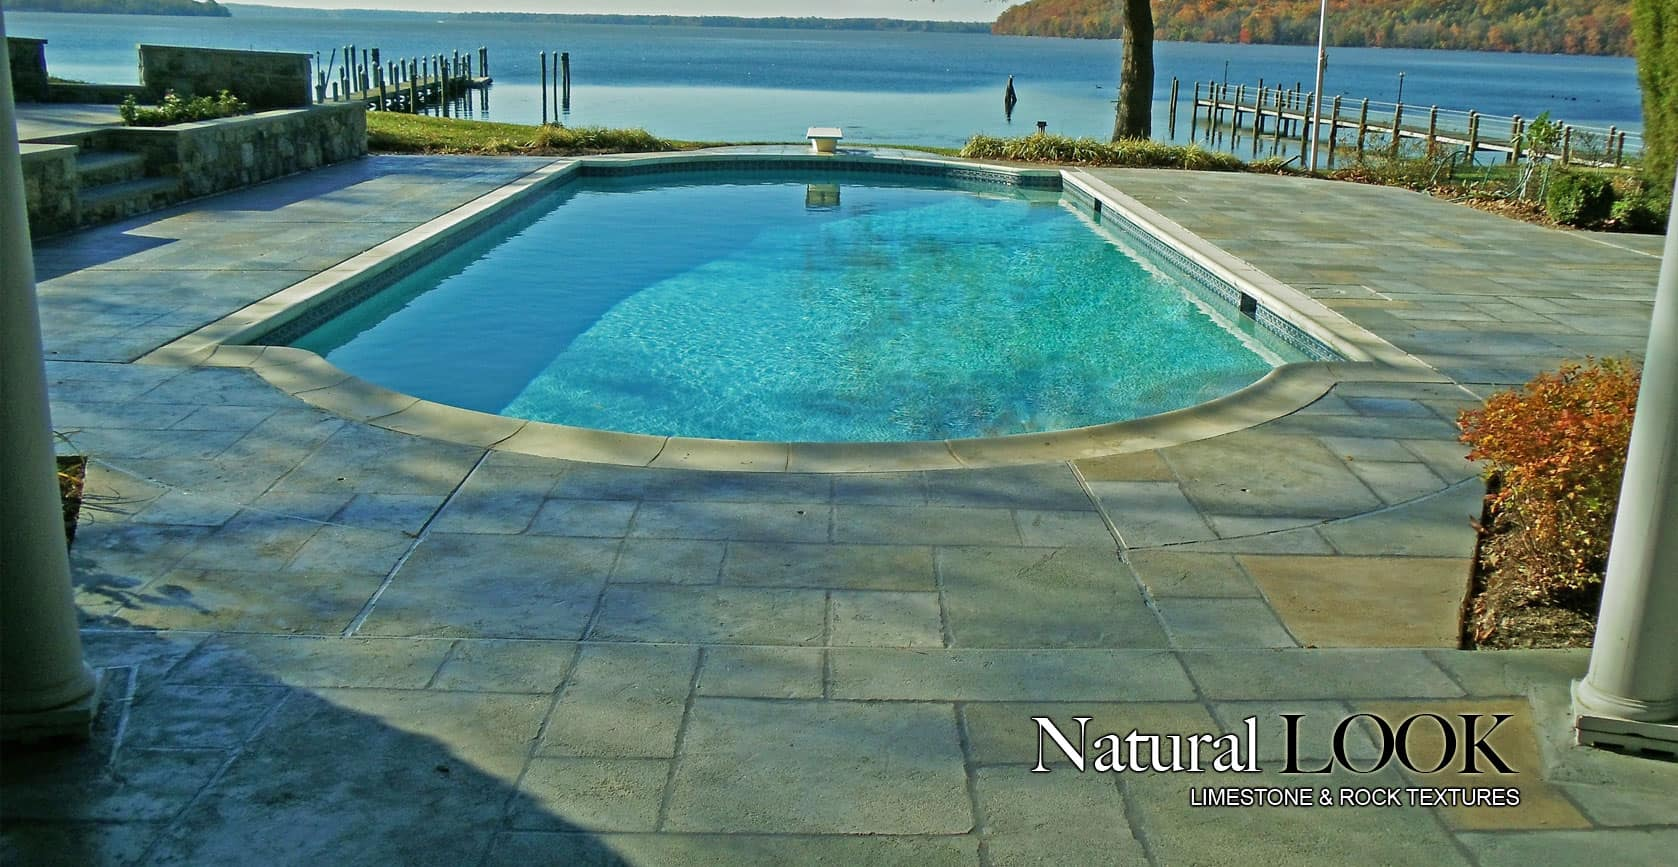 Concrete Pool Decks Photo Gallery What Are The Best Options For Concrete Pool Deck Finishes